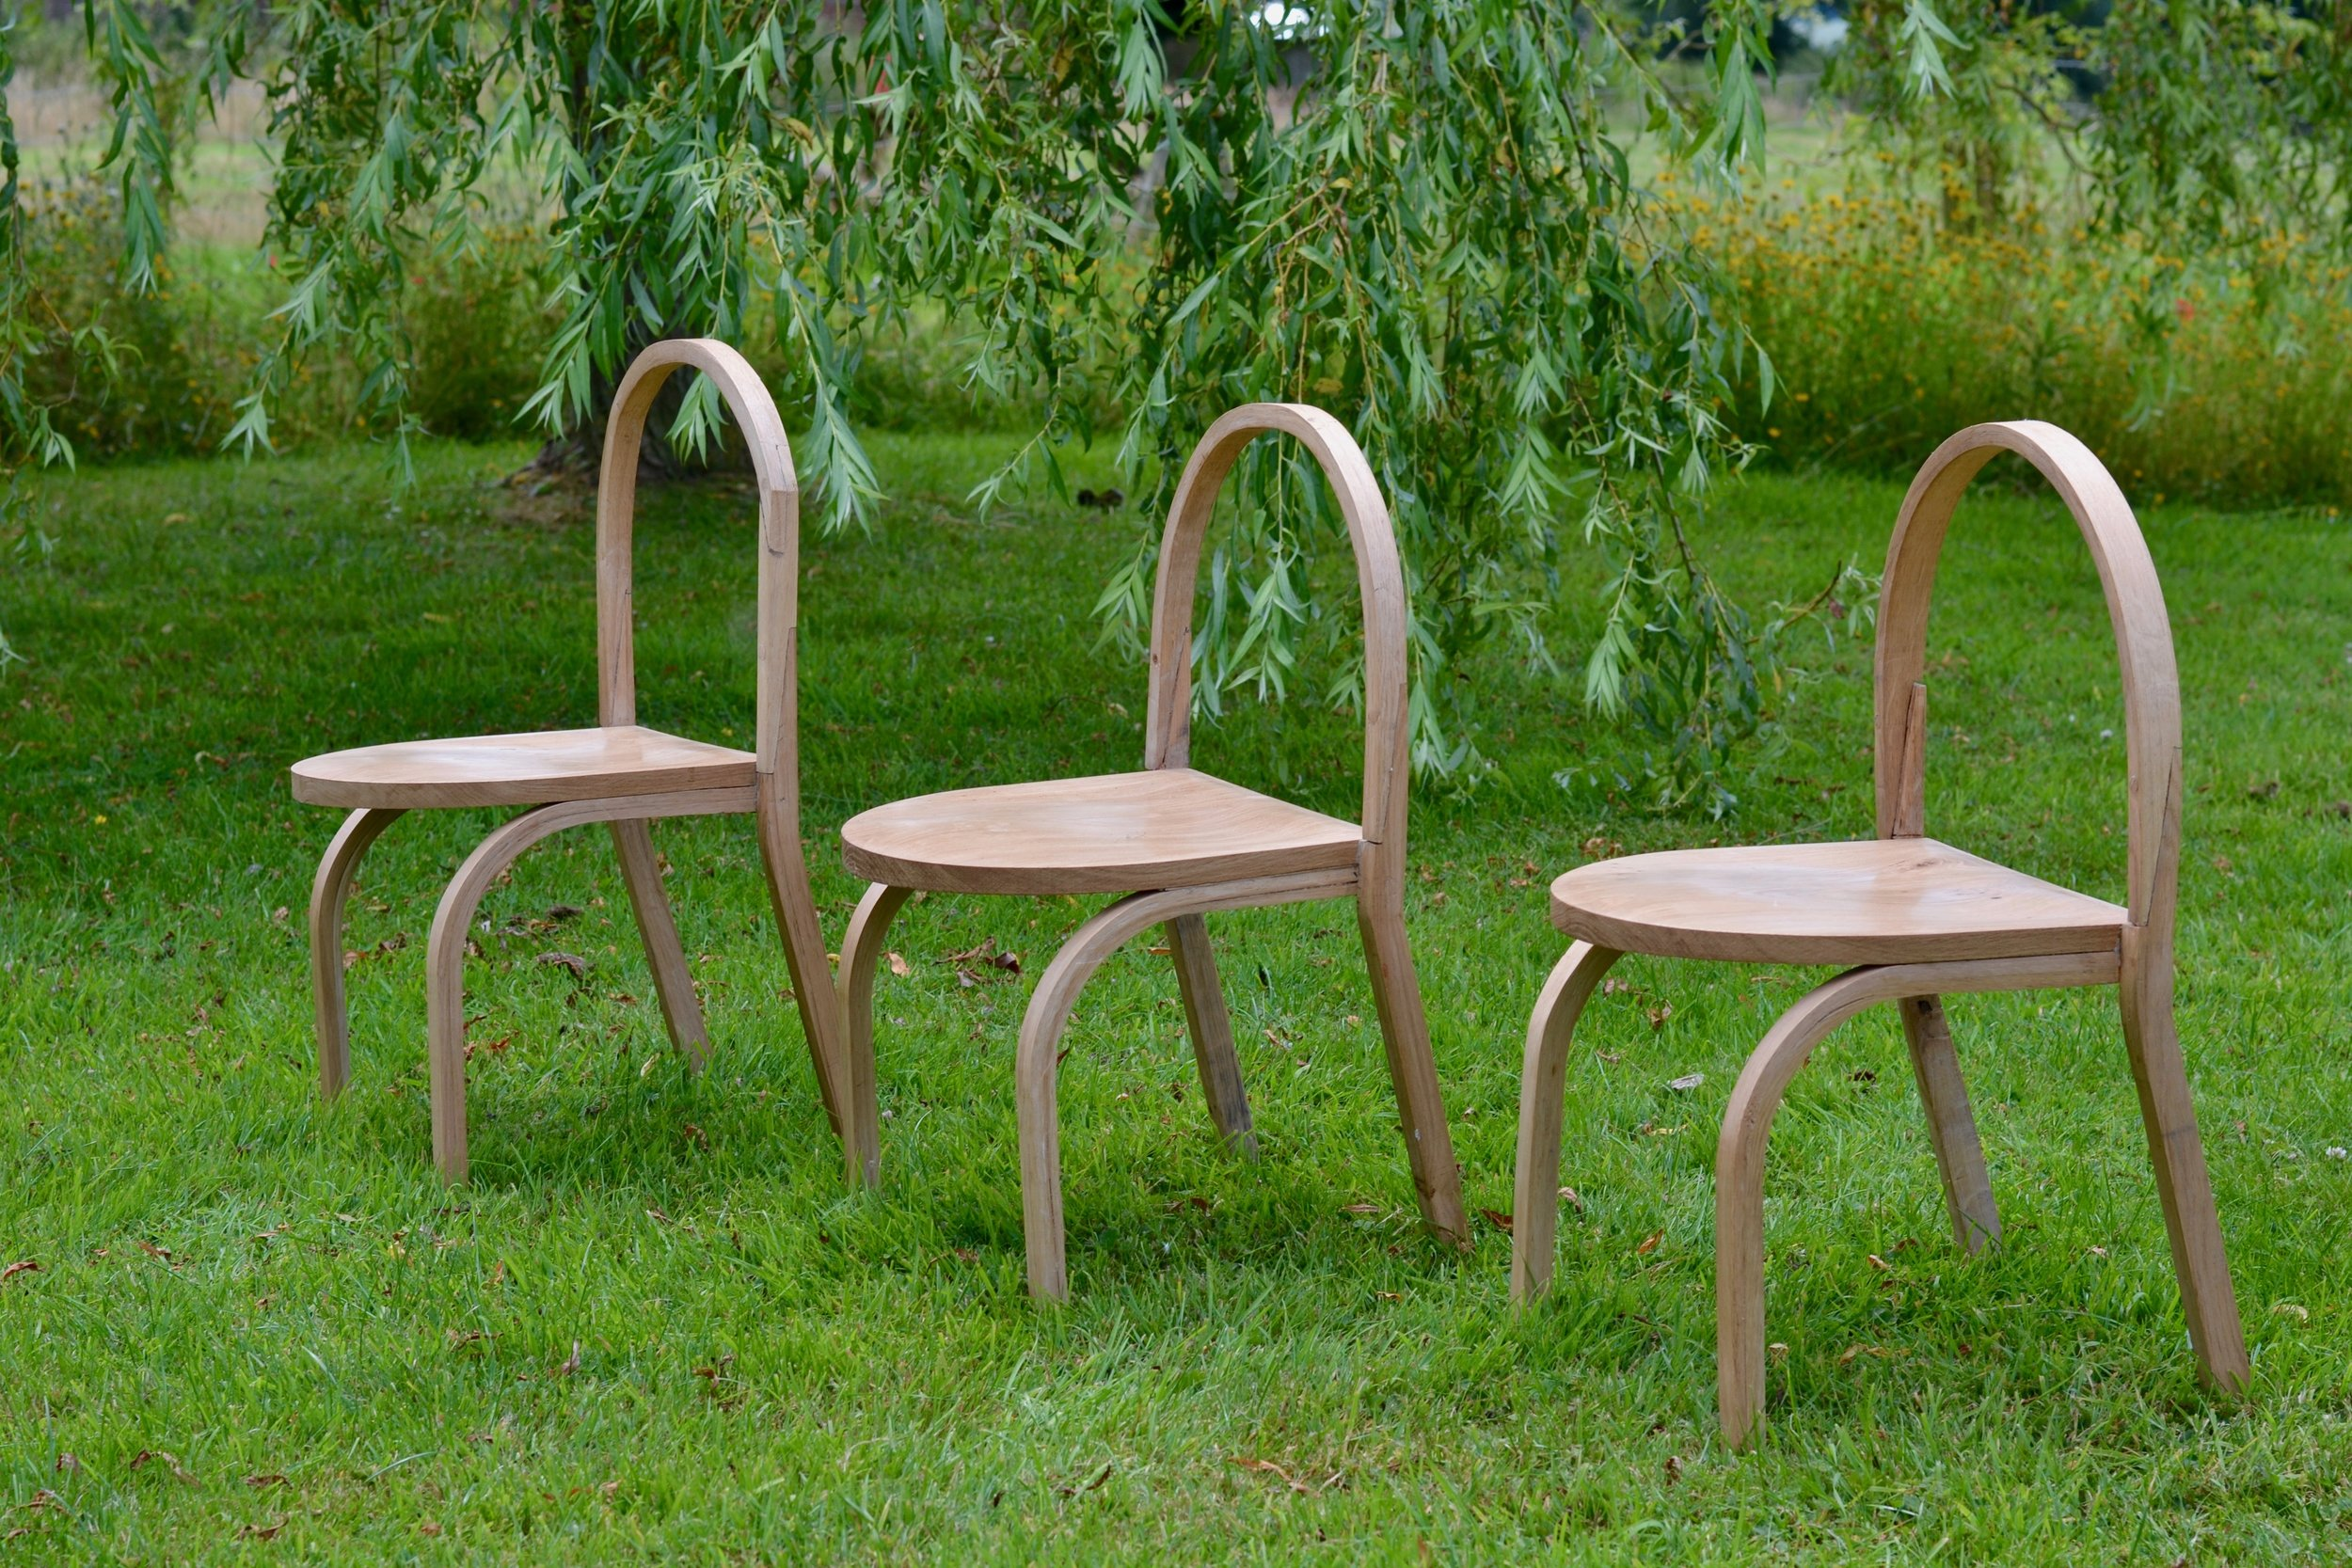 - The chair is made of English oak that has been stem bent or CNC milled.